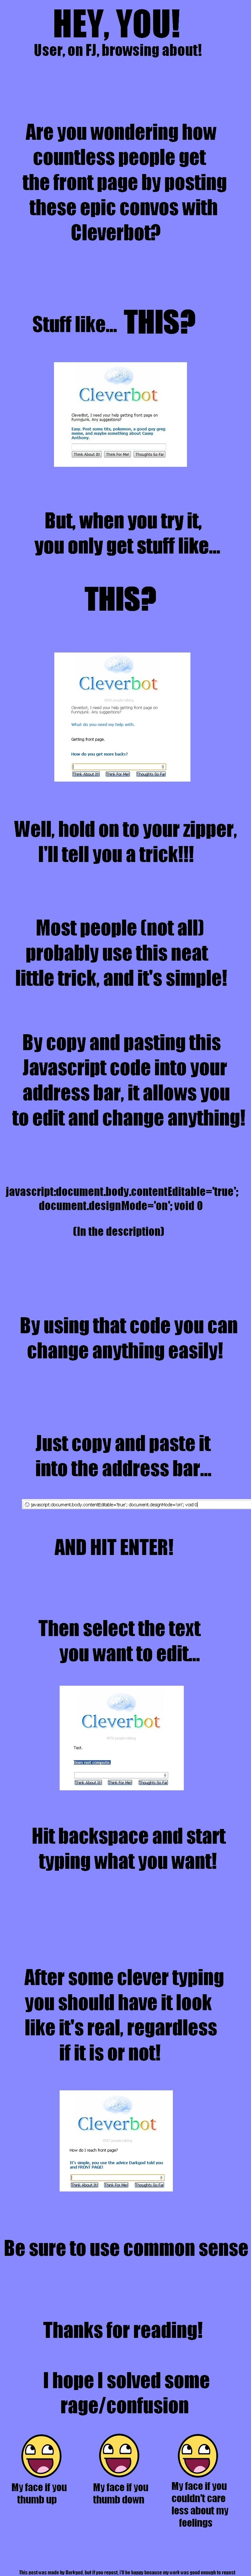 How to edit websites and stuff. The code is: javascript:document.body.contentEditable='true'; document.designMode='on'; void 0 Thanks for viewing!. Cleverbot Cl